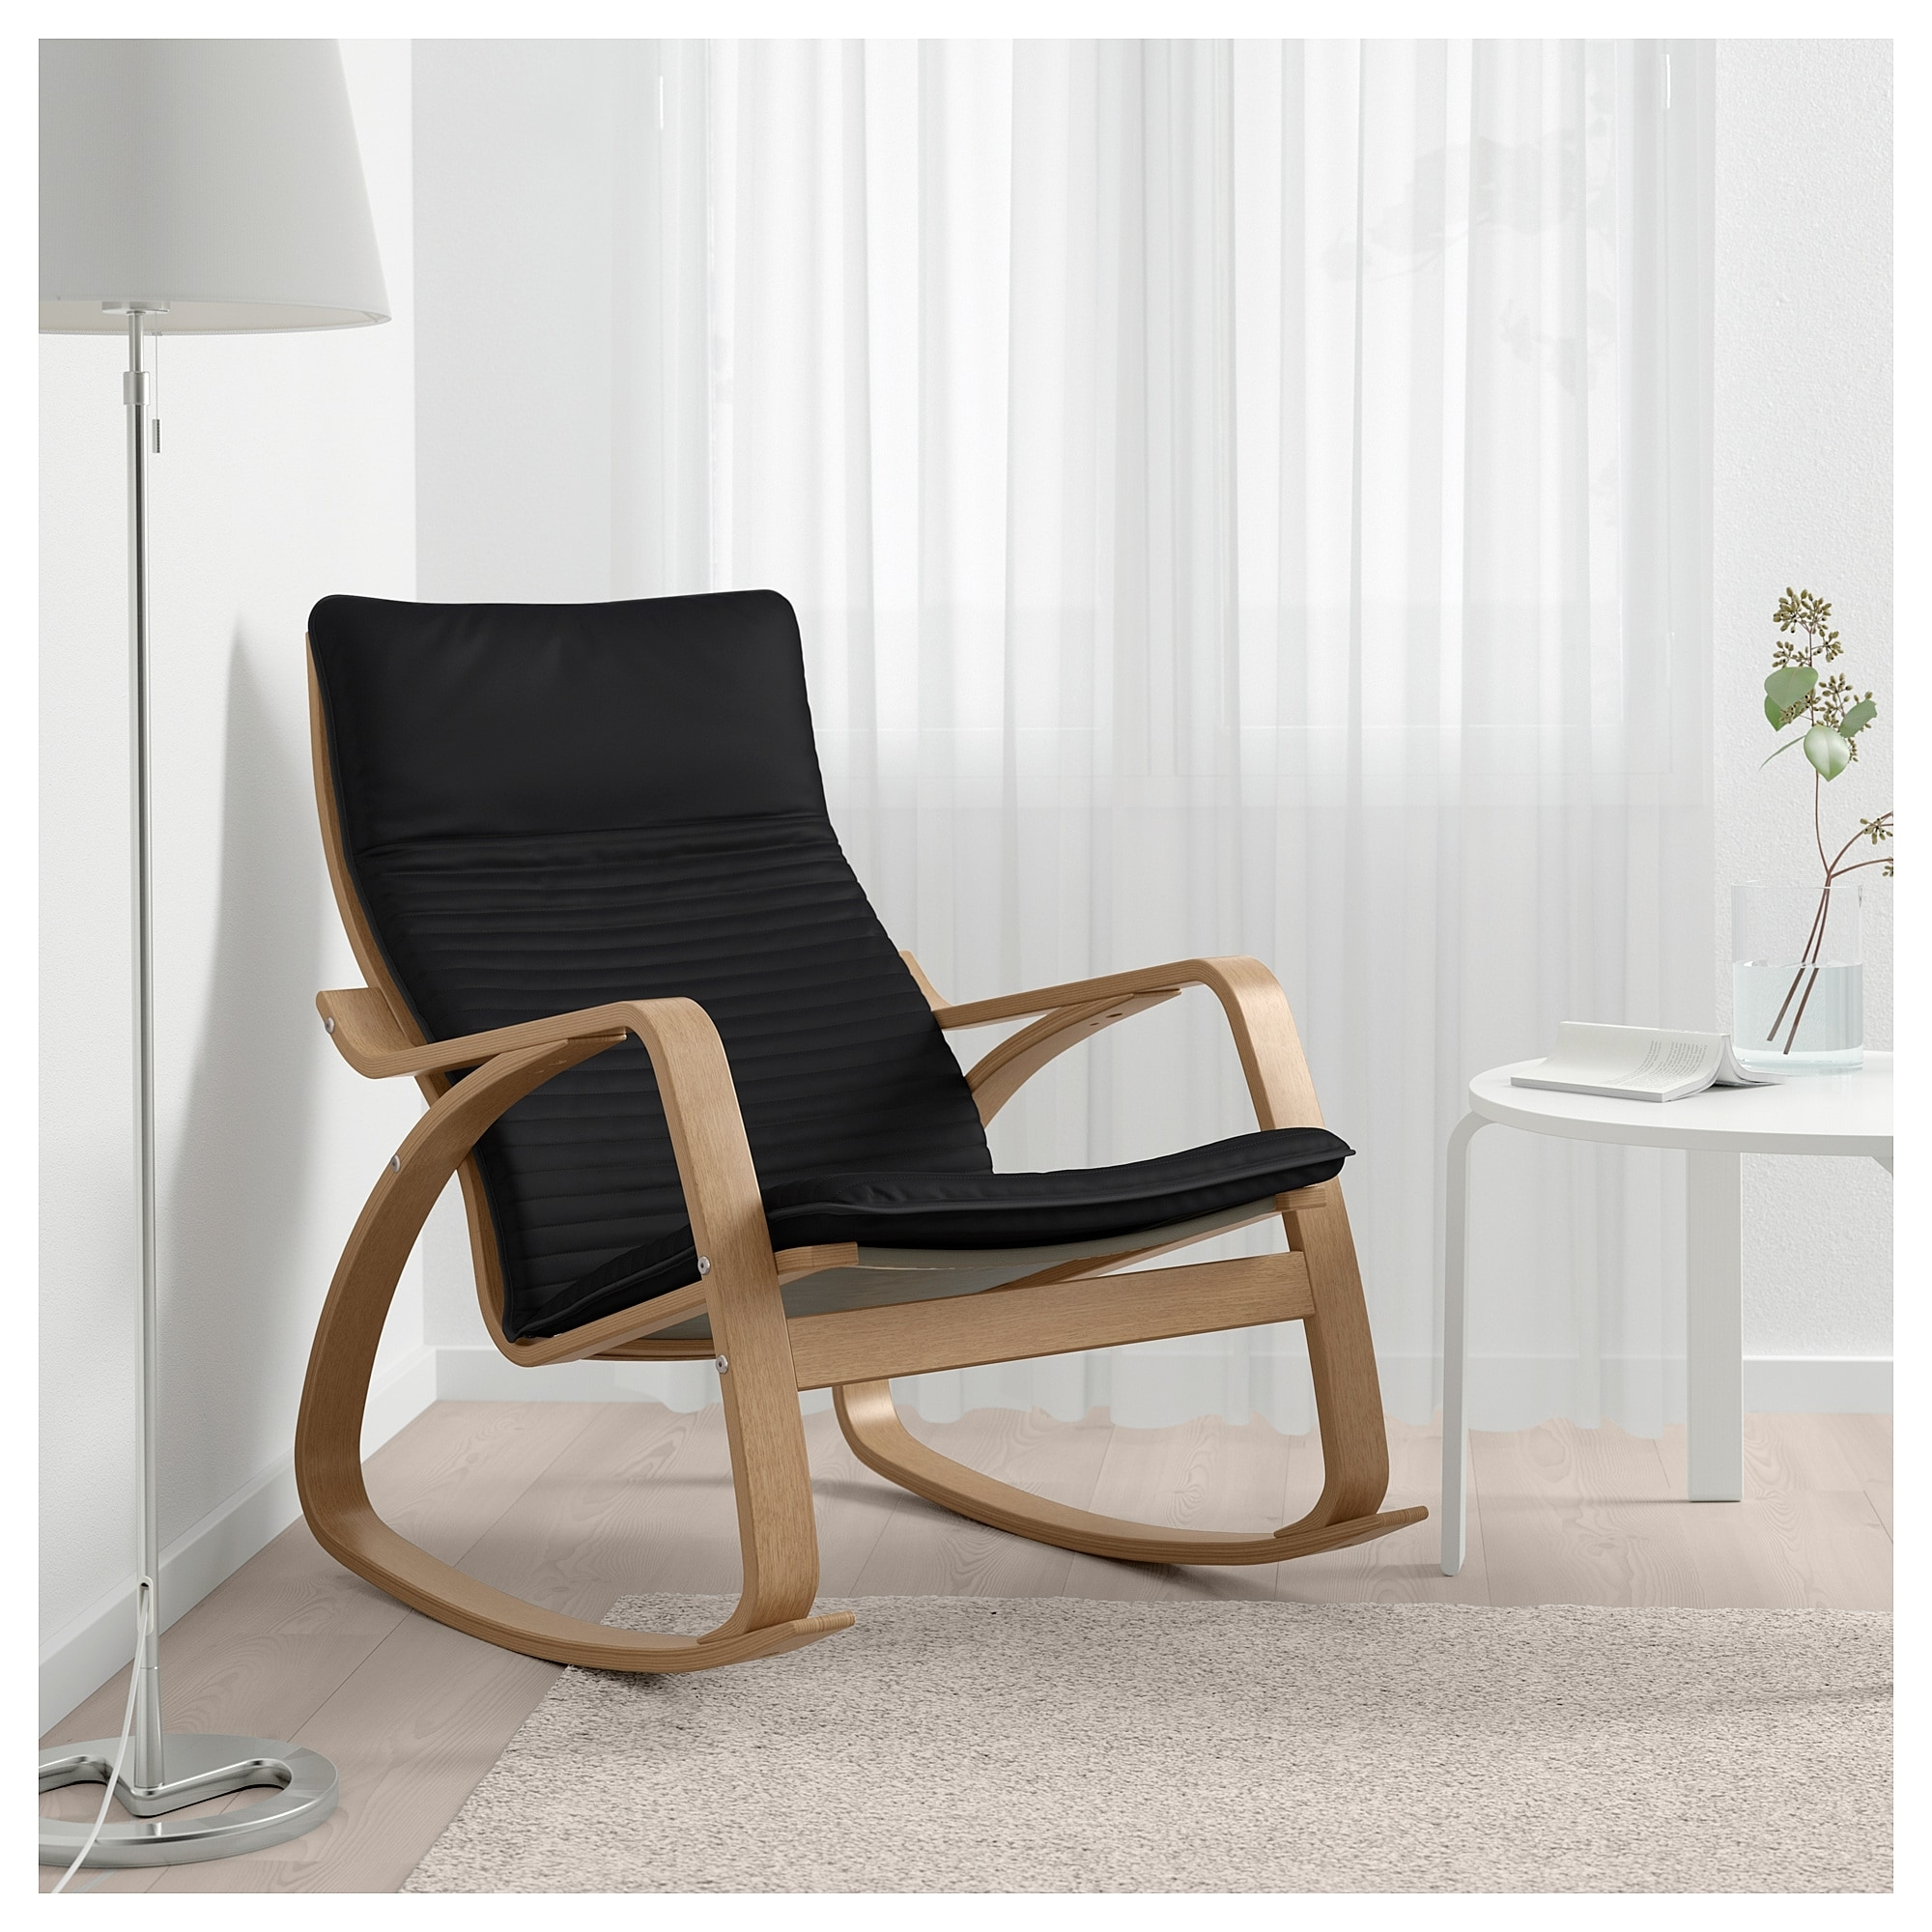 Most Recent Poäng Rocking Chair Oak Veneer/knisa Black – Ikea Throughout Ikea Rocking Chairs (View 14 of 15)